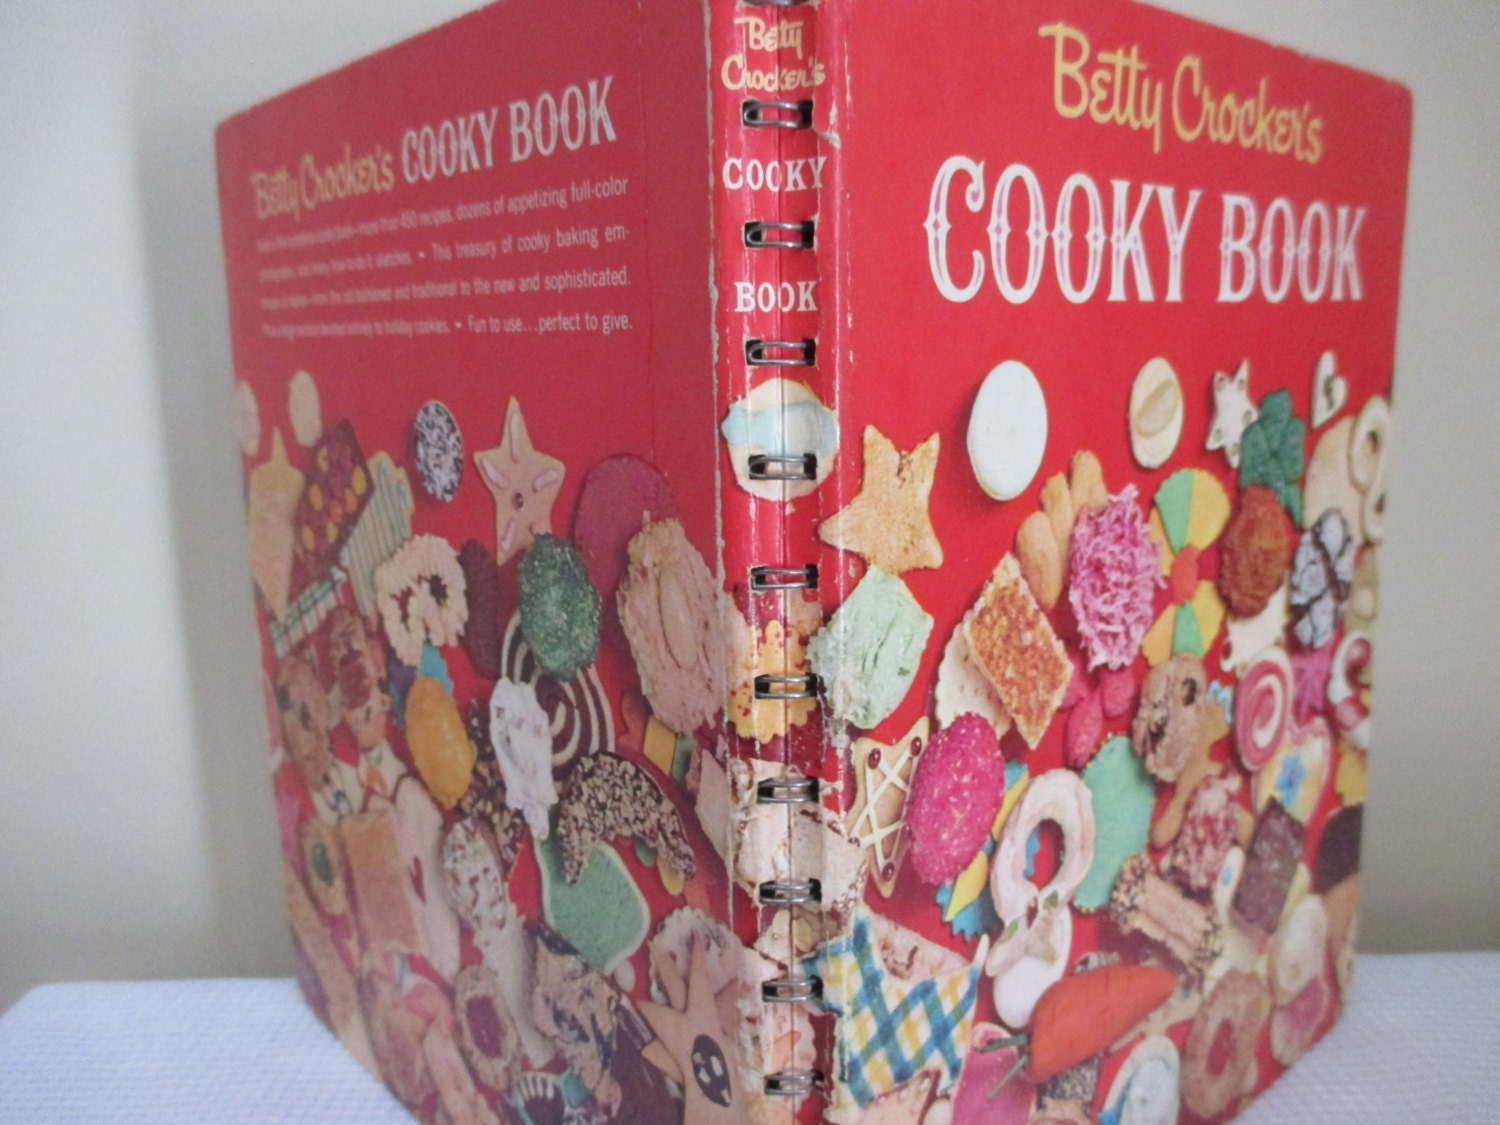 BETTY CROCKER'S COOKY BOOK HARDCOVER SPIRAL BOUND COOKBOOK 14TH PRINTING 1973